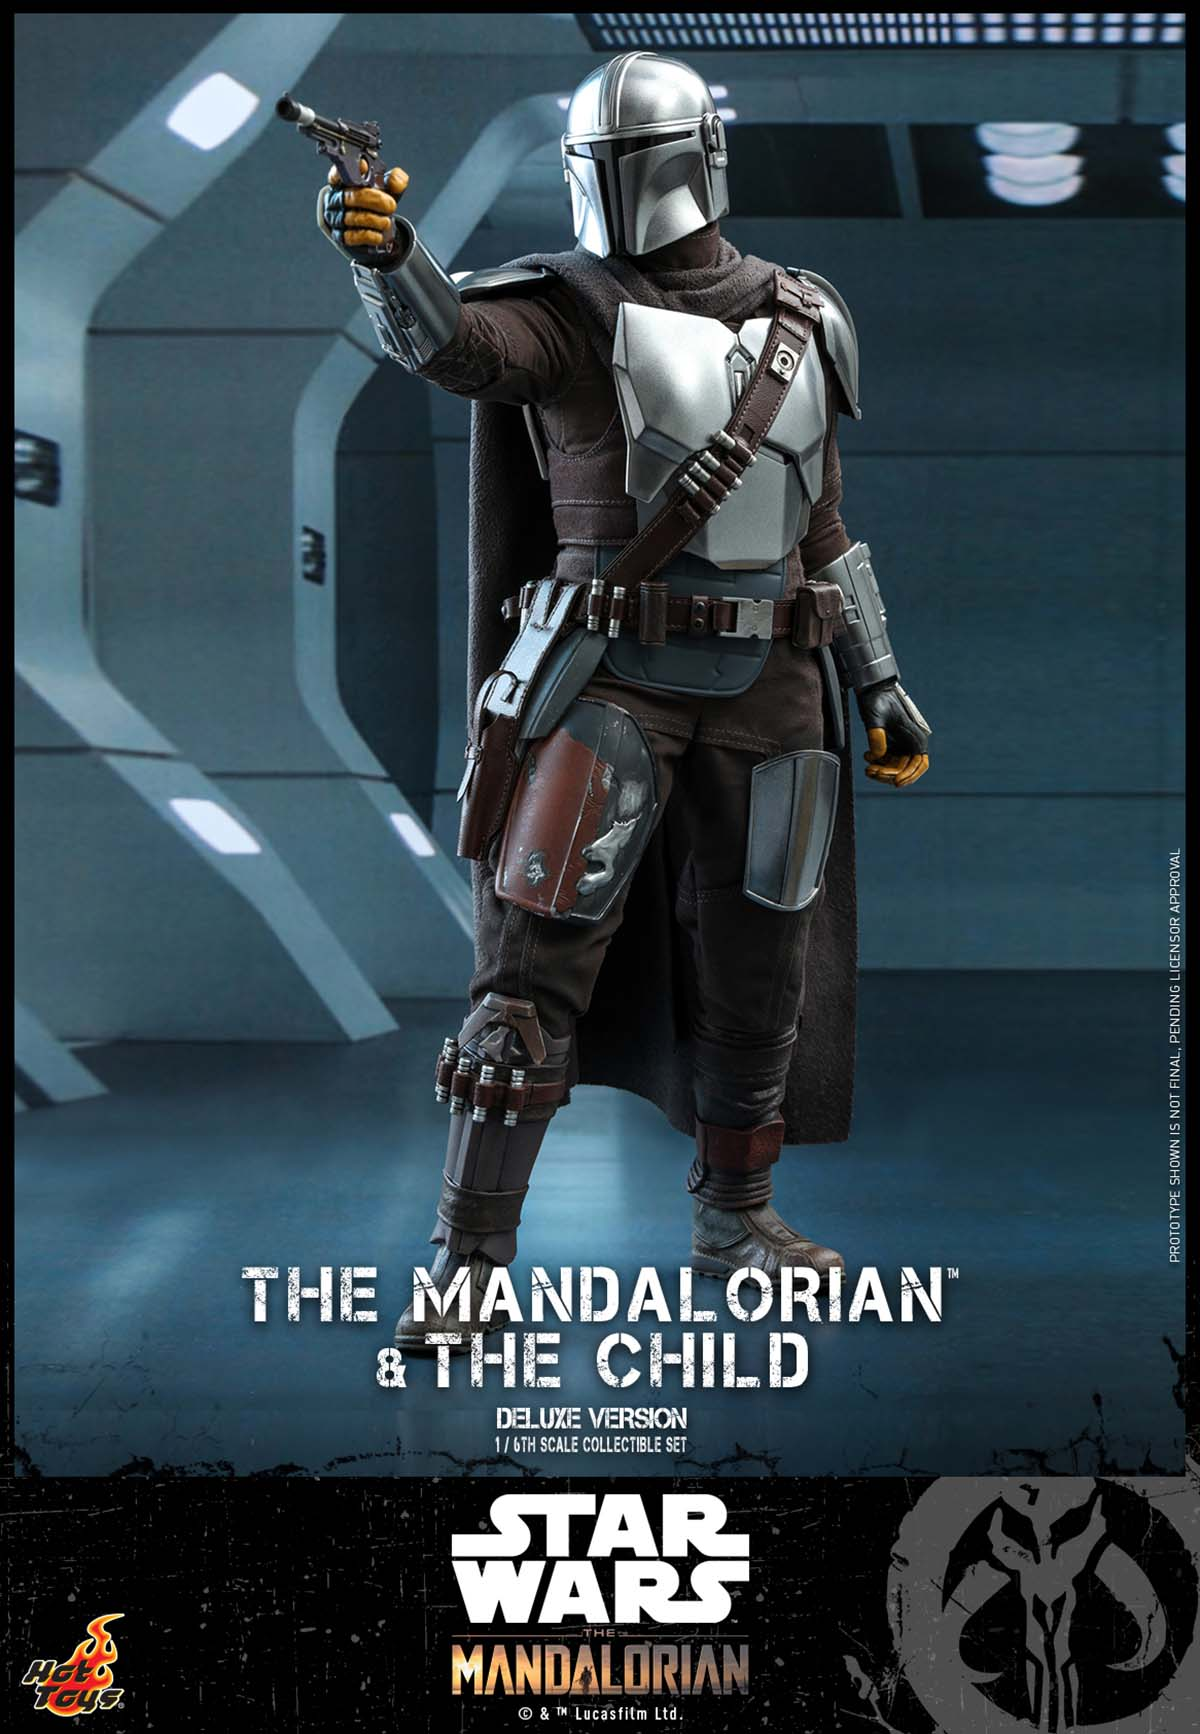 hot-toys-stm-mandalorian-and-child-collectible-set-deluxe_pr6